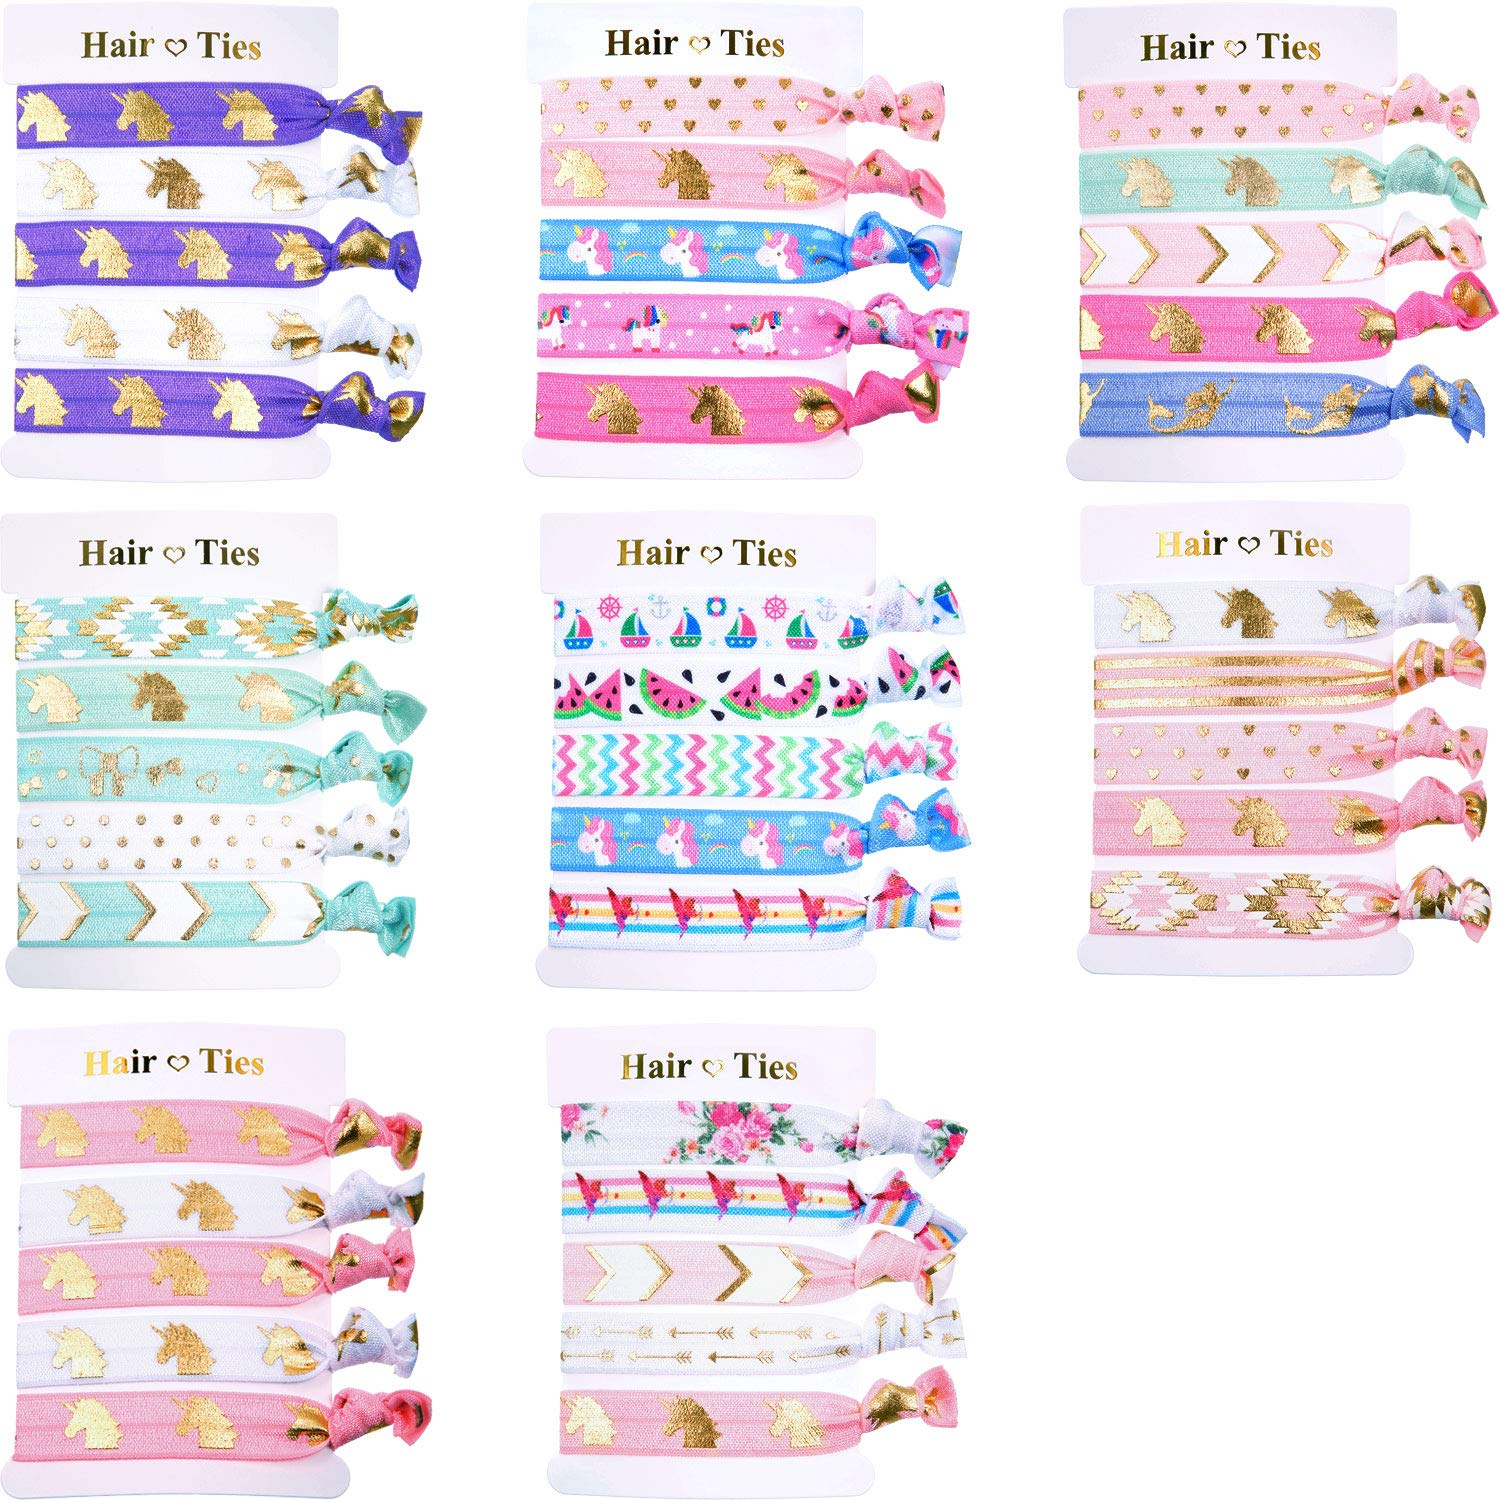 BBTO 40 Pieces Unicorn Colorful Hair Ties Bracelet Party Favors Birthday Gifts Supplies, Elastic Ponytail Holders Decorations for Girl and Children